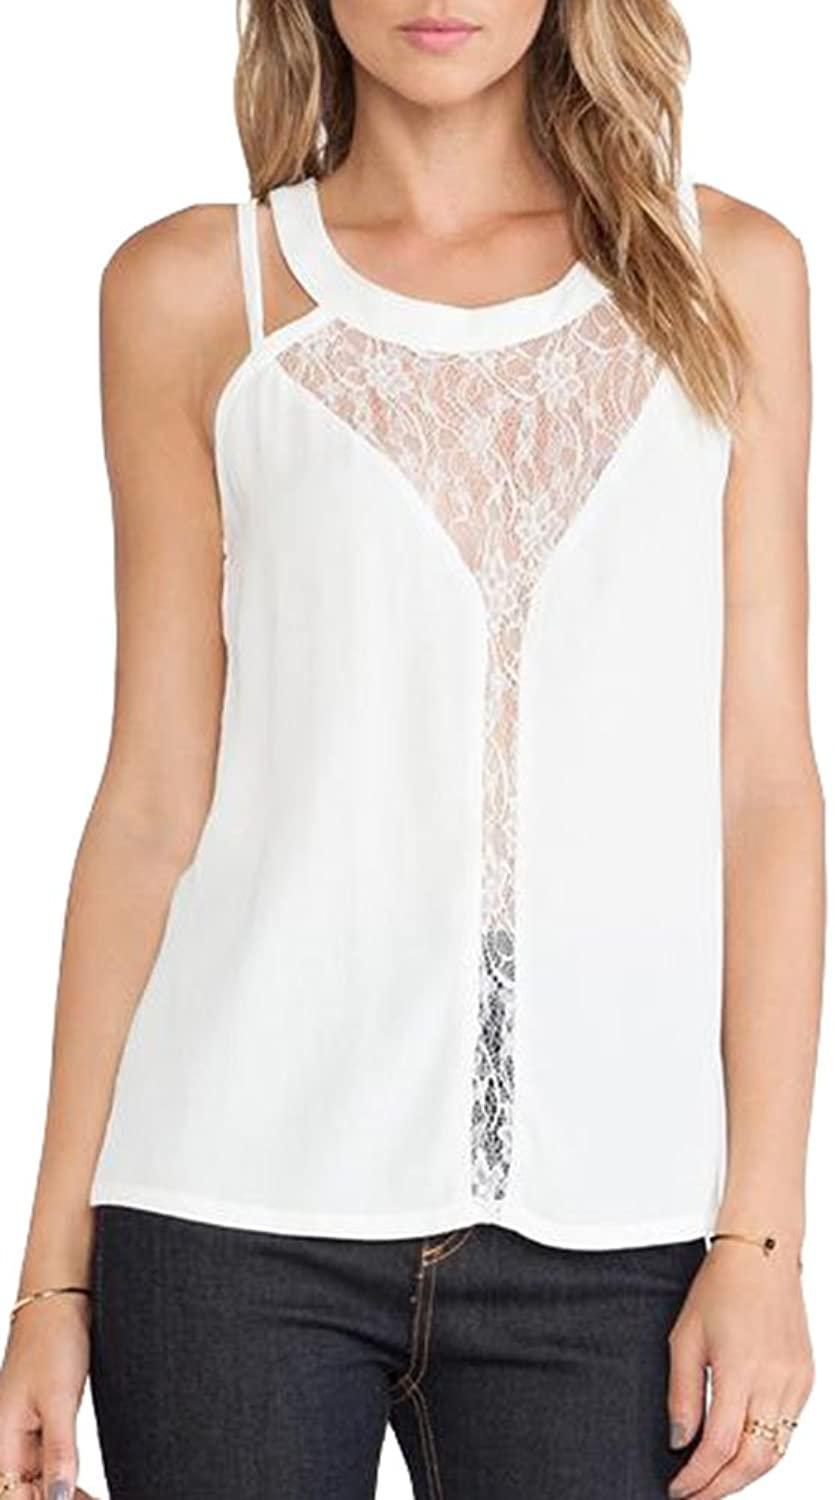 Popuus Women's Sexy Lace Splicing Tank Top White